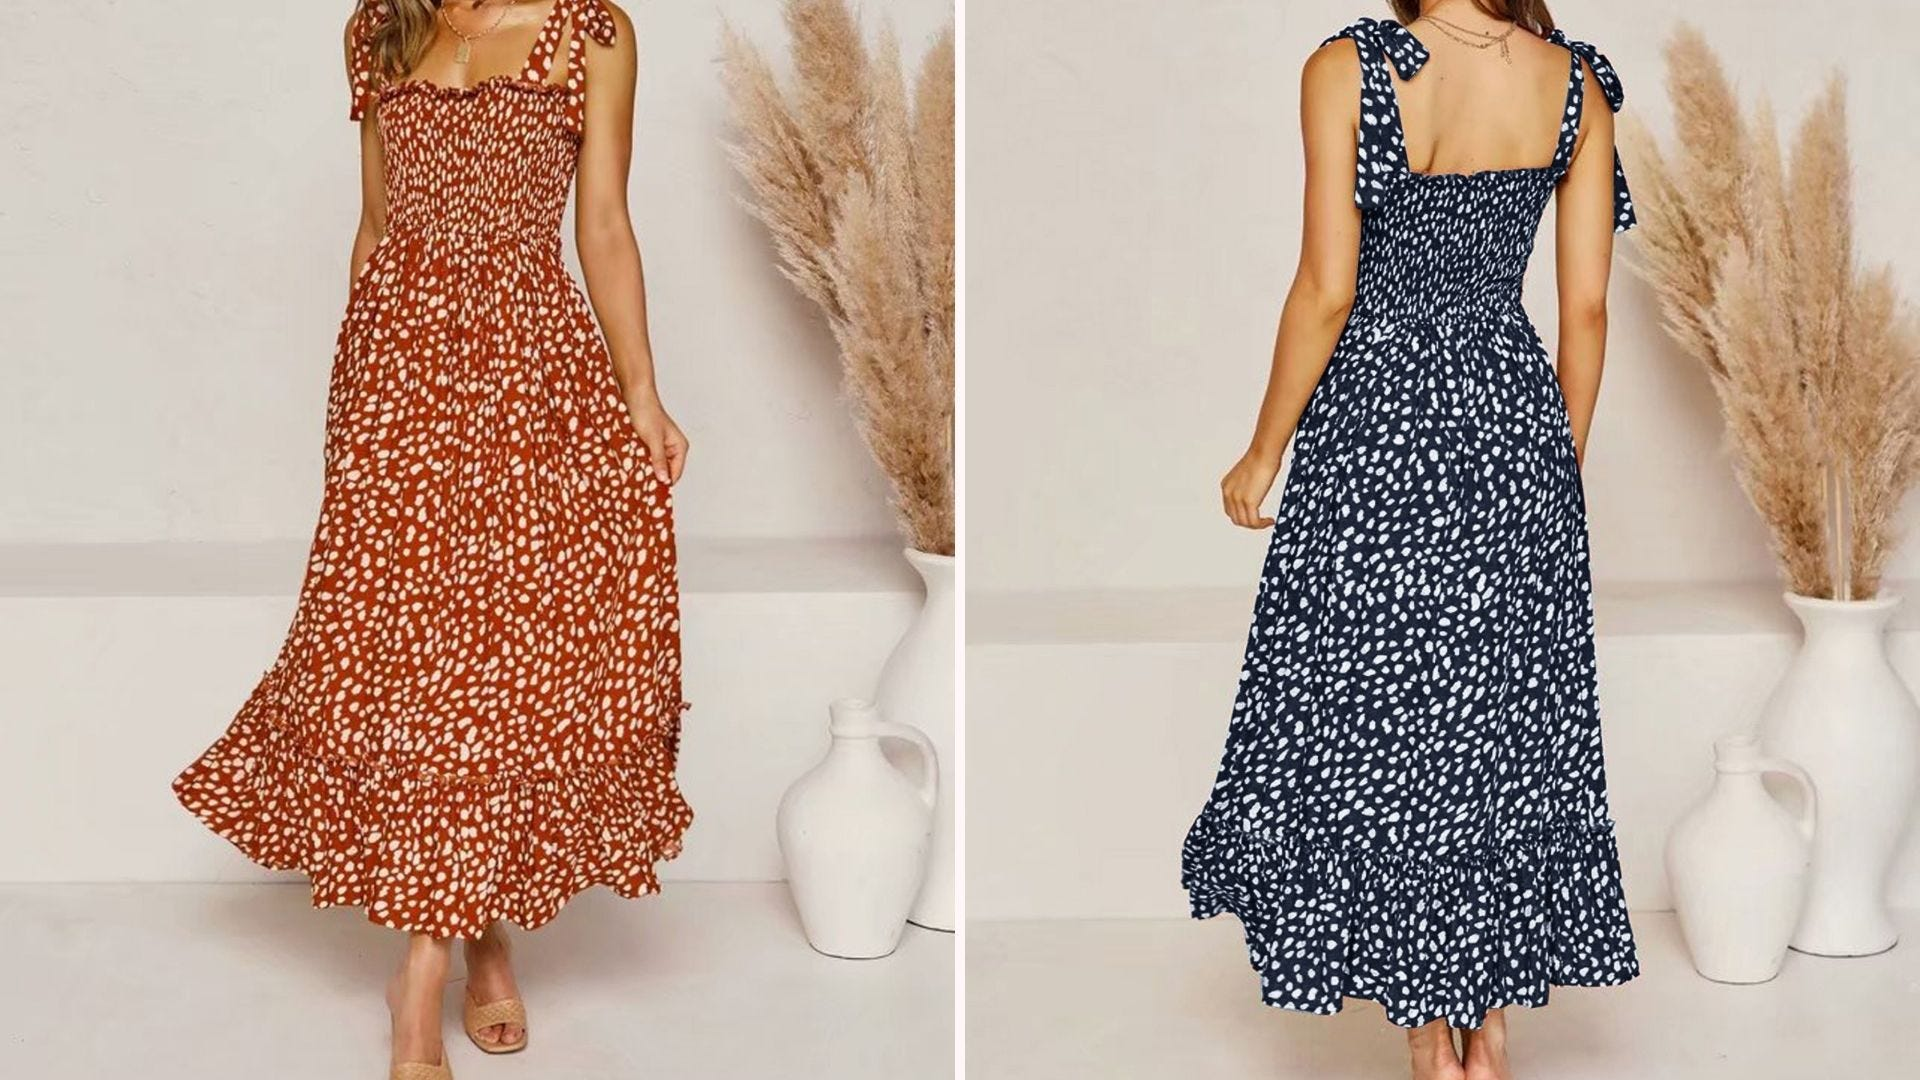 A woman in a red polka dot maxi dress; back view of a woman in a blue polka dot maxi dress